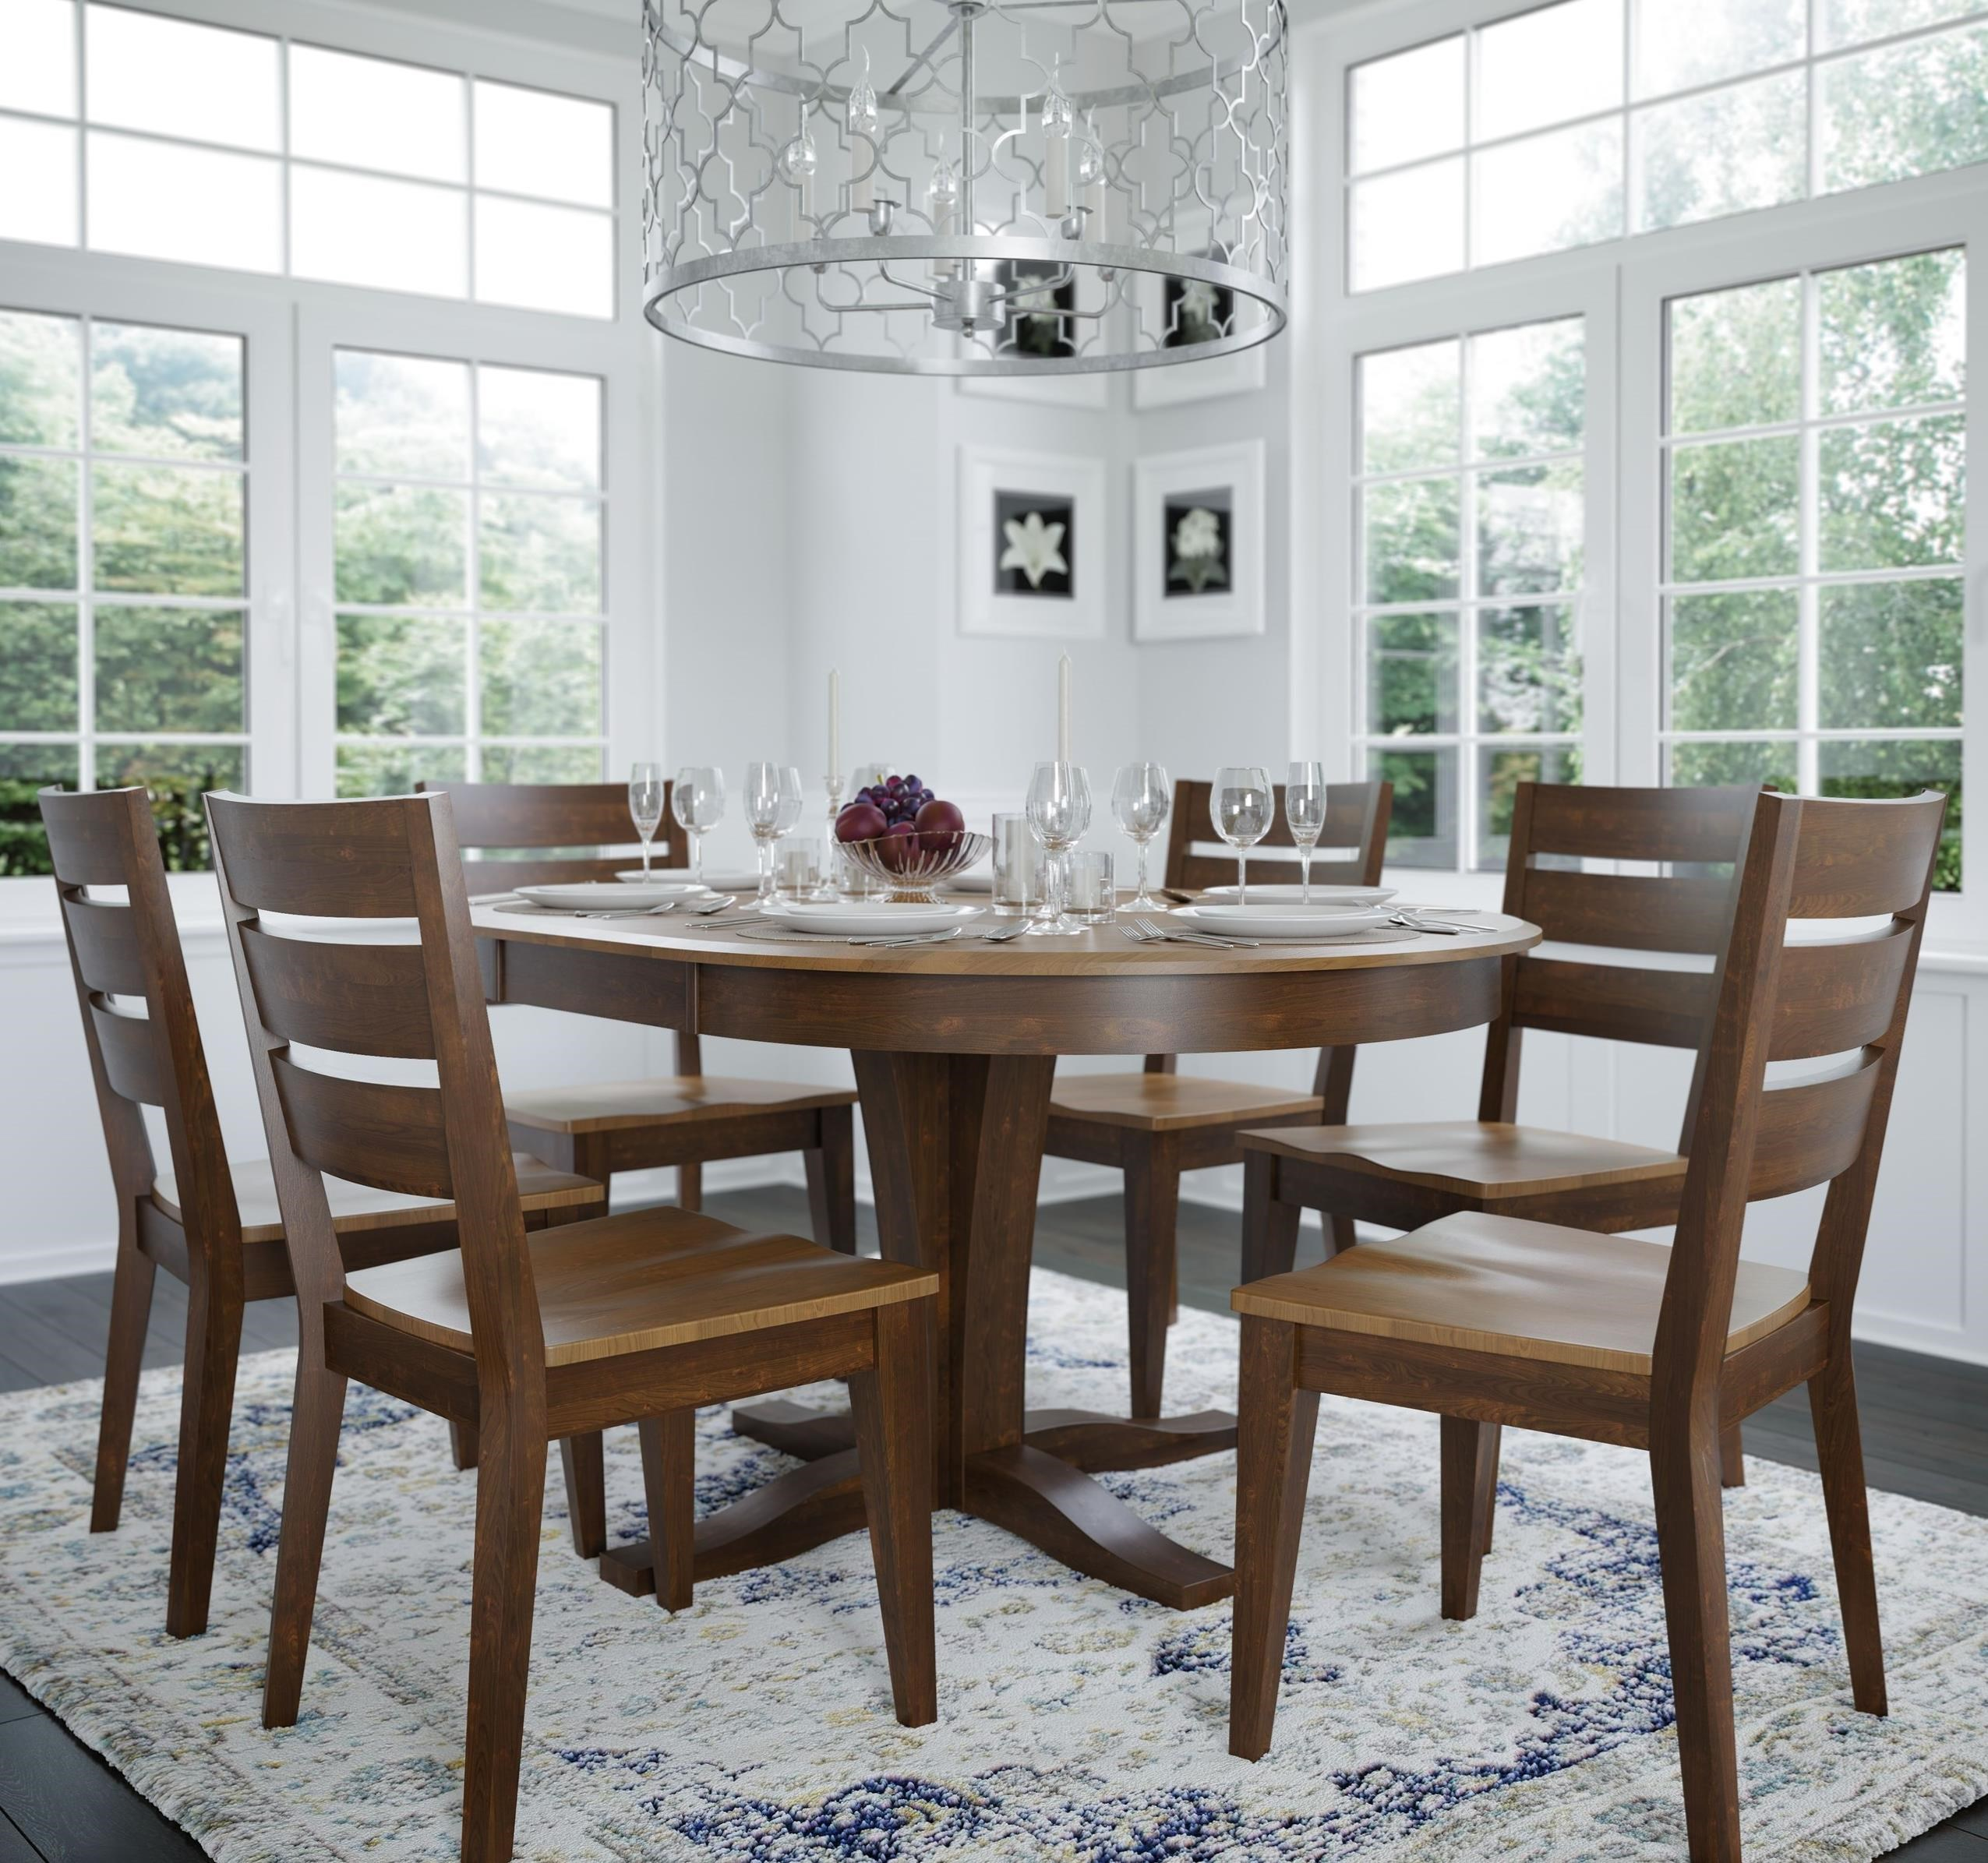 Gourmet - Custom Dining Customizable Round/Oval Table Set by Canadel at Dinette Depot